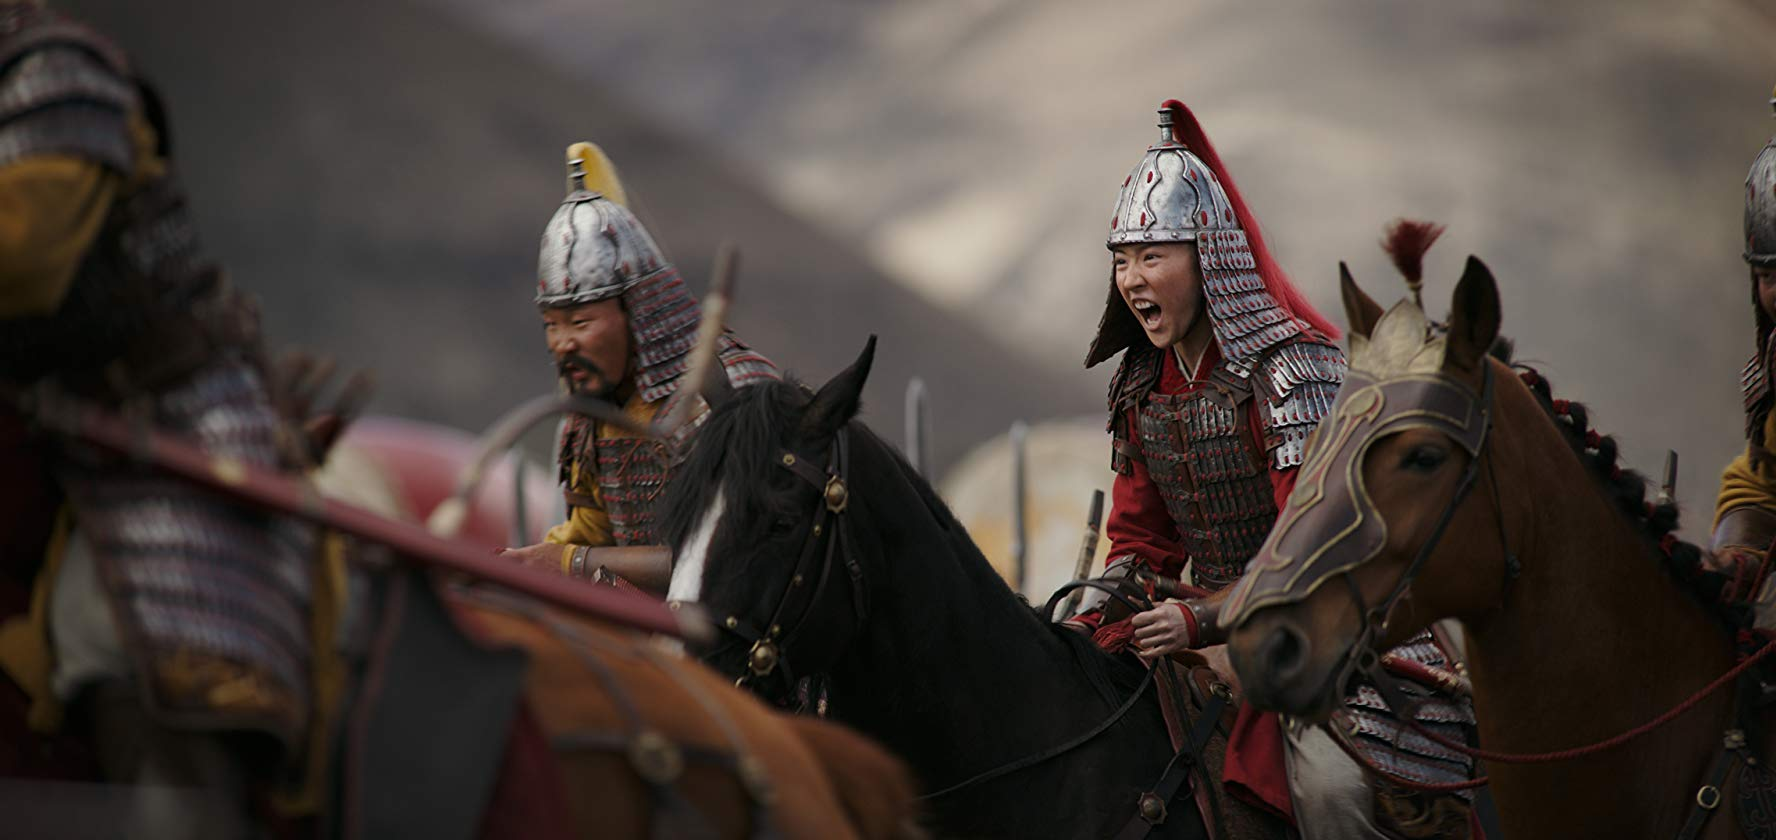 Mulan rides into battle in the live action Mulan